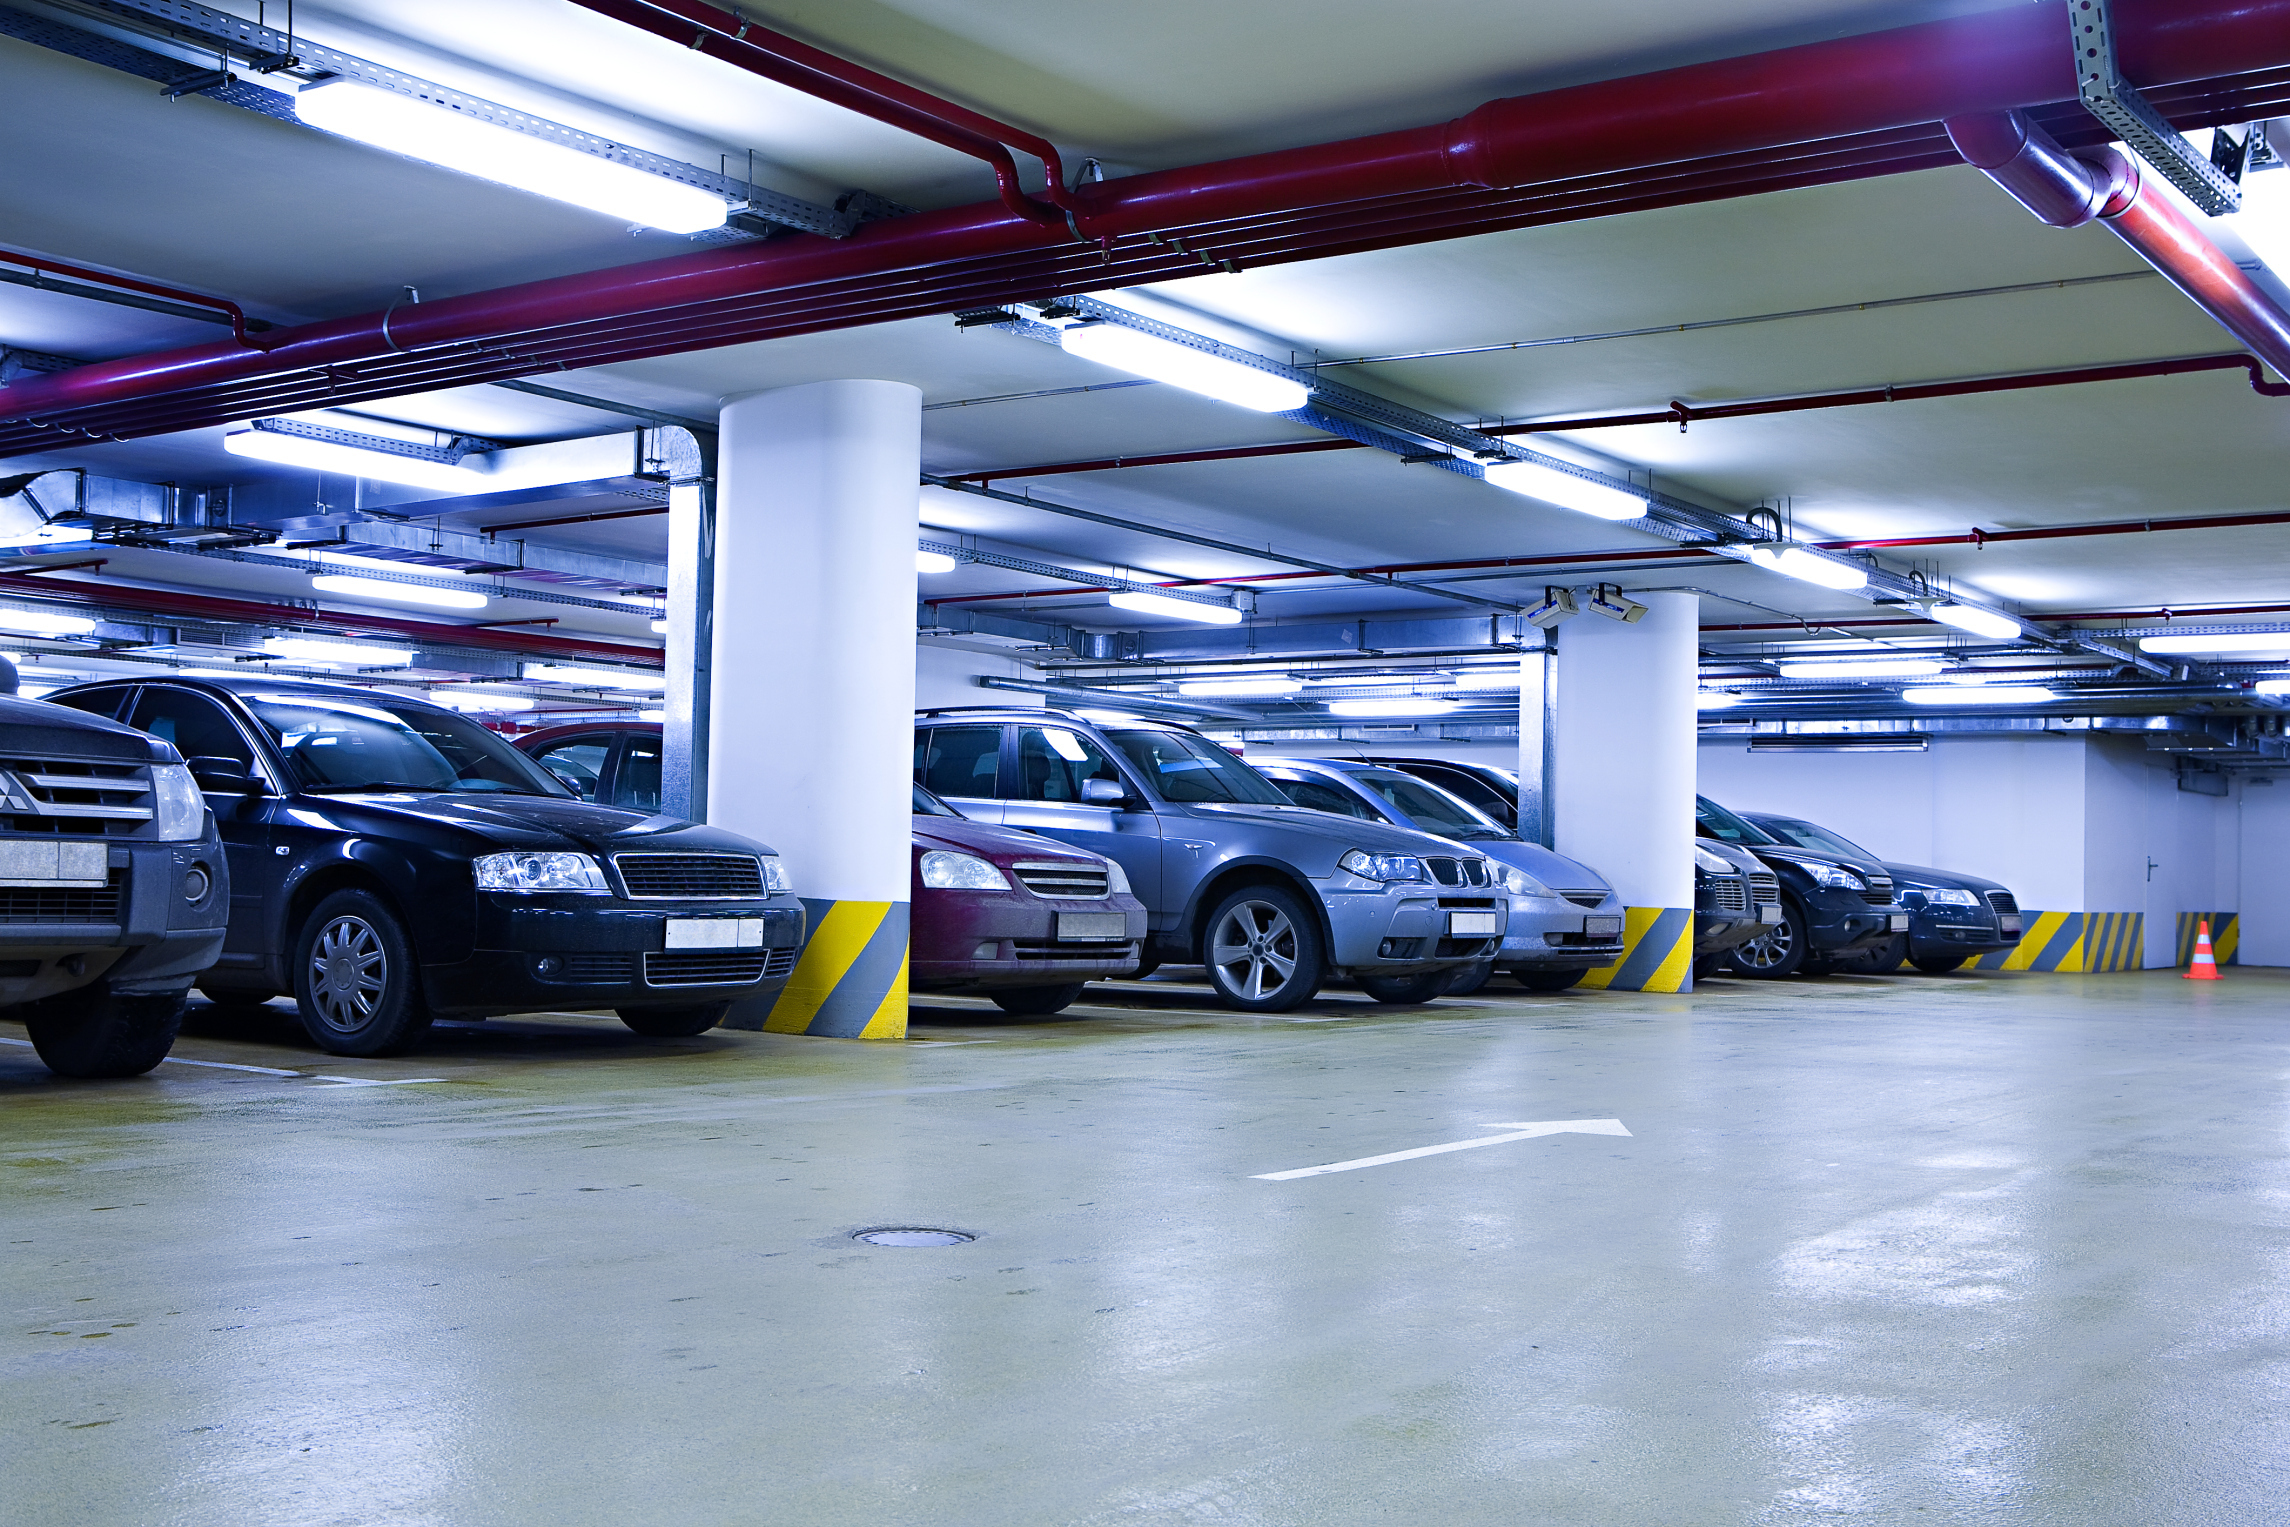 Tested by AAA: People park worse than self-parking cars | PCWorld